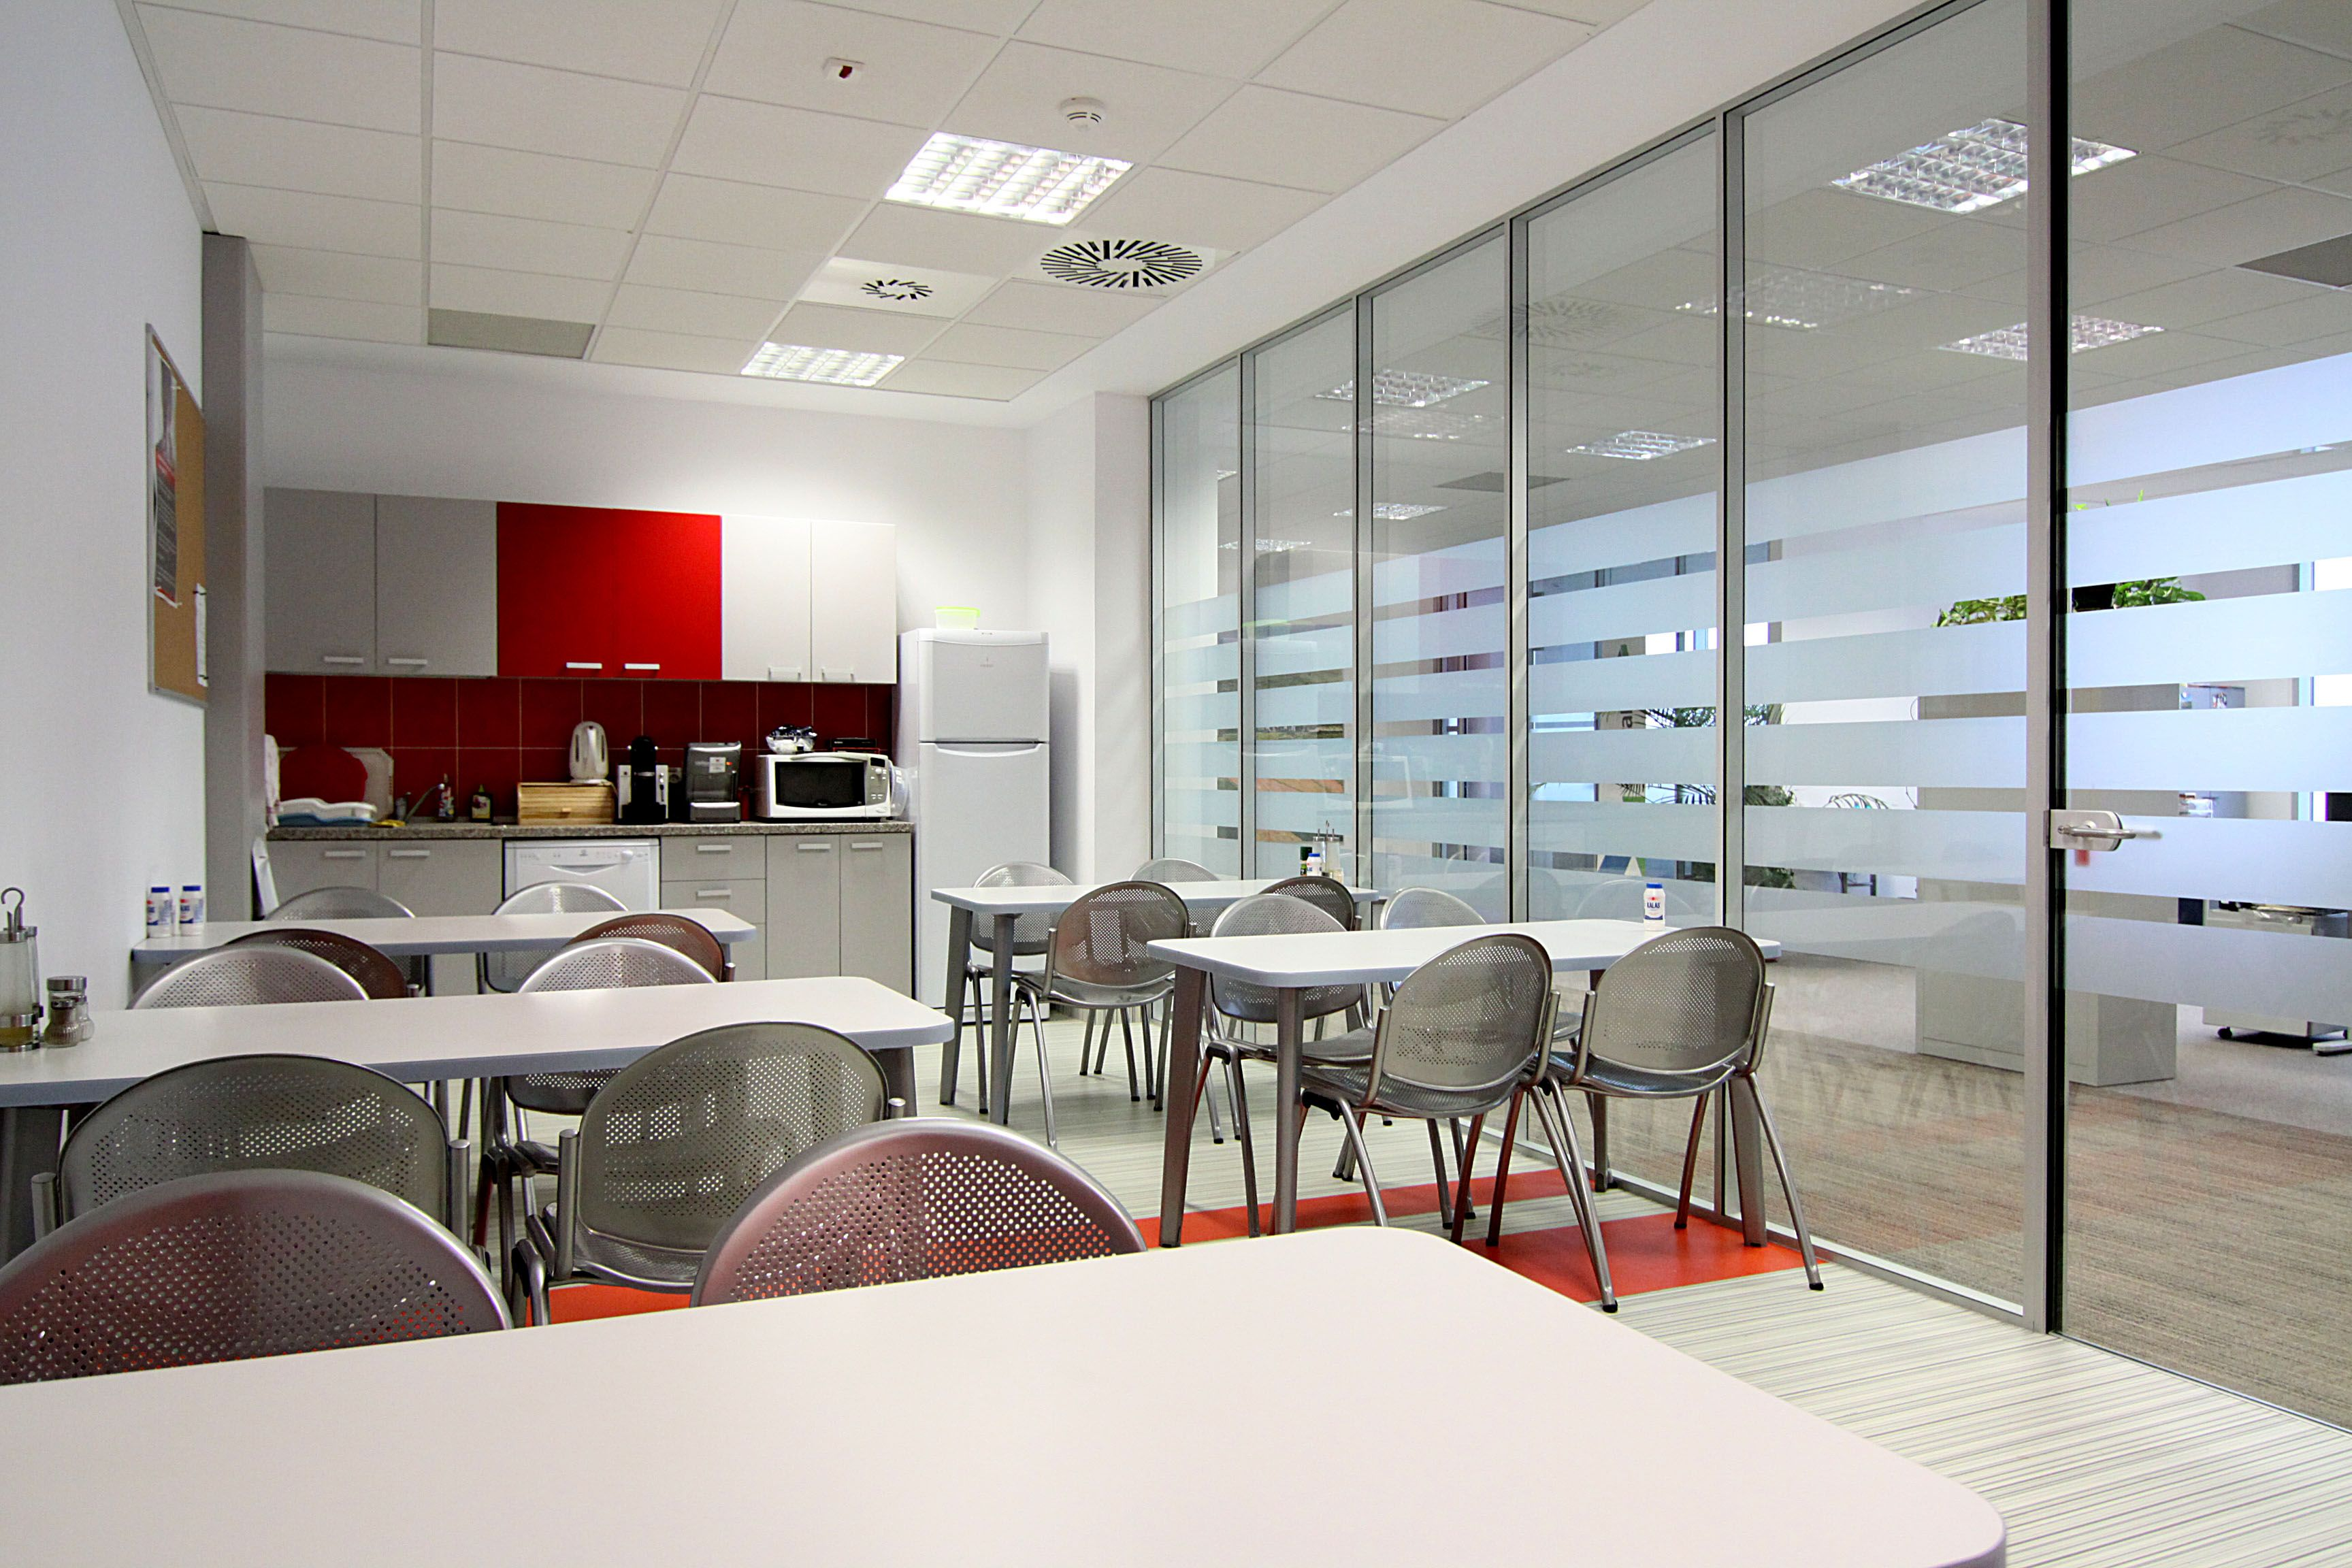 office cafeteria design. Office Cafeteria Design Awesome Plans Free Fresh On